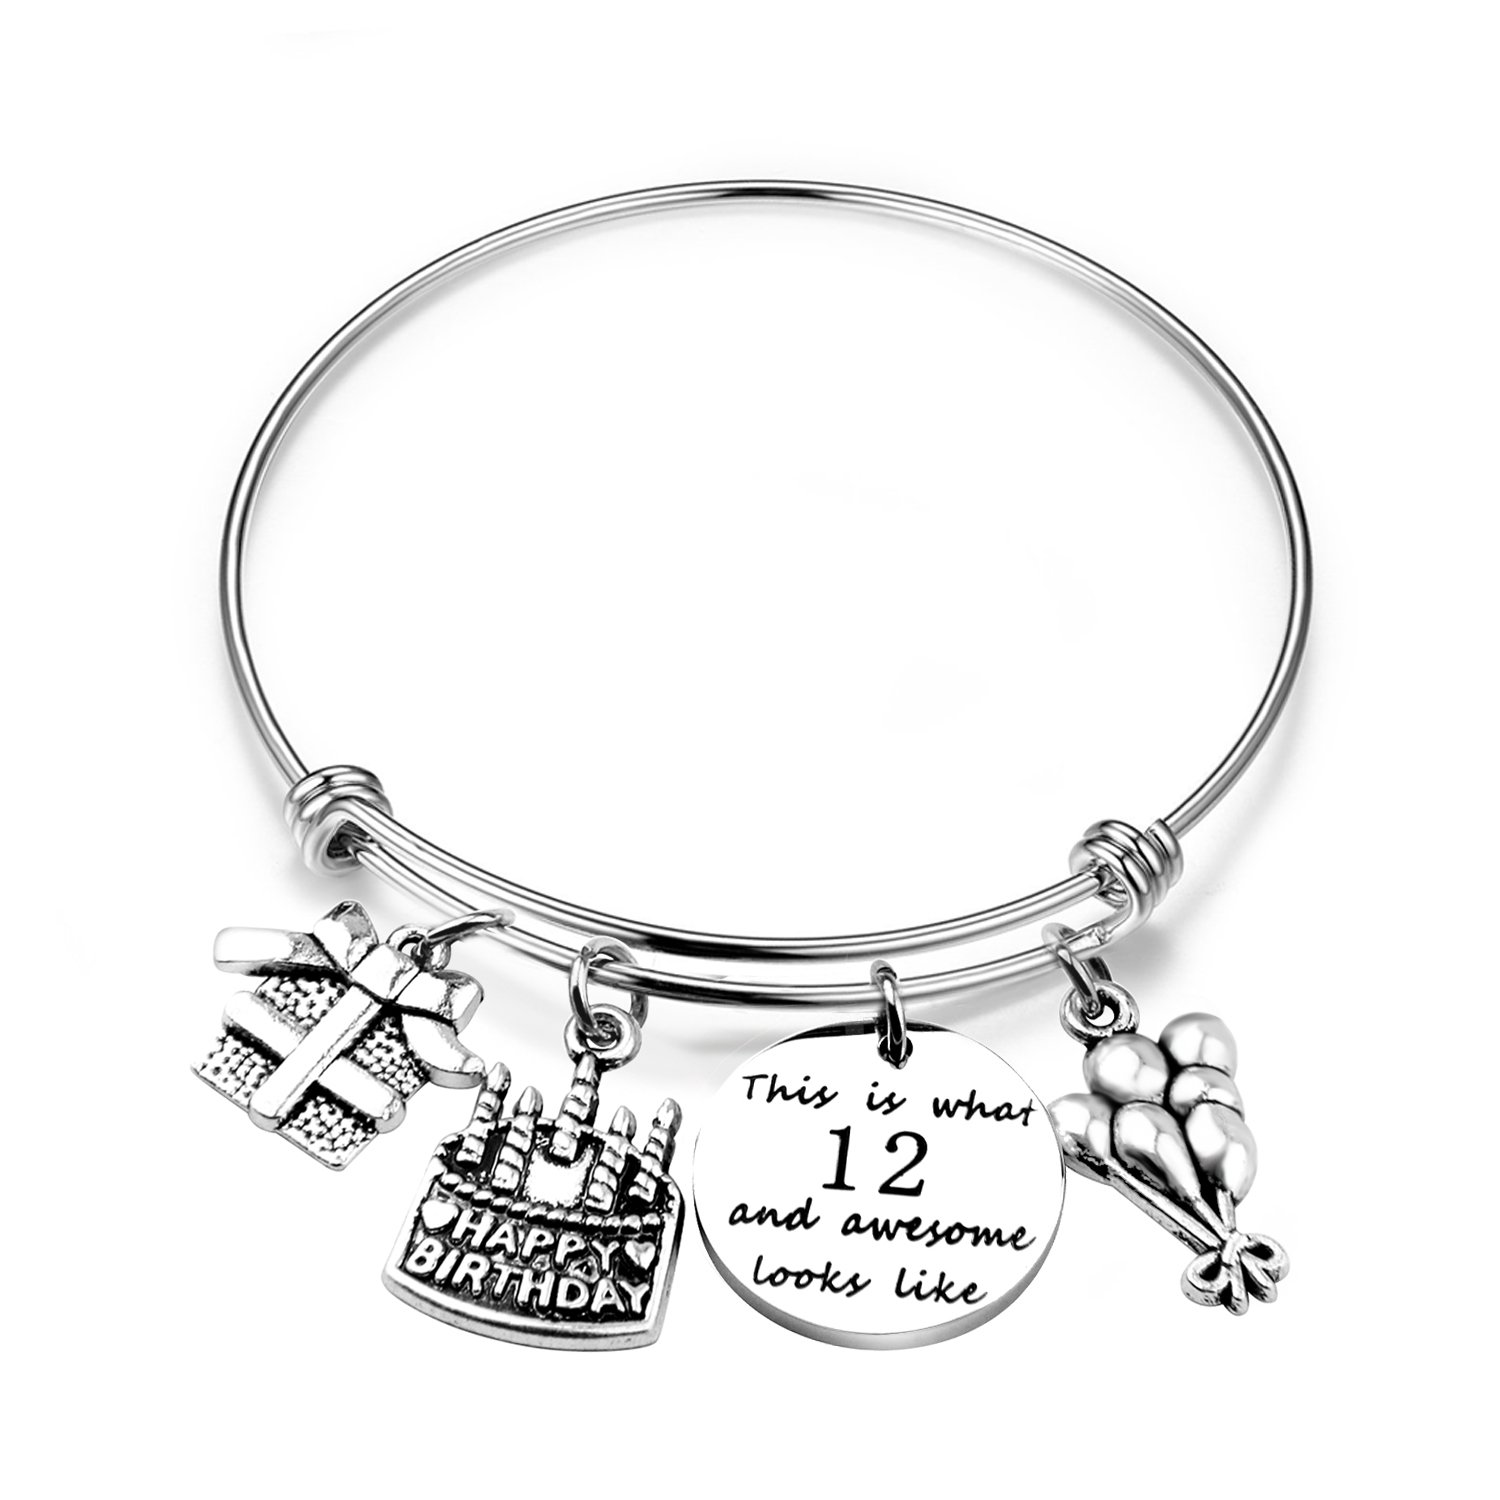 ENSIANTH Birthday Gift for Her Adjustable Birthday Bracelet Bangle with Birthday Cake Charm,12th Sweet 16th 18th 21st 30th 39th 40th Bangle gift,Anniversary Gift (12th Birthday)